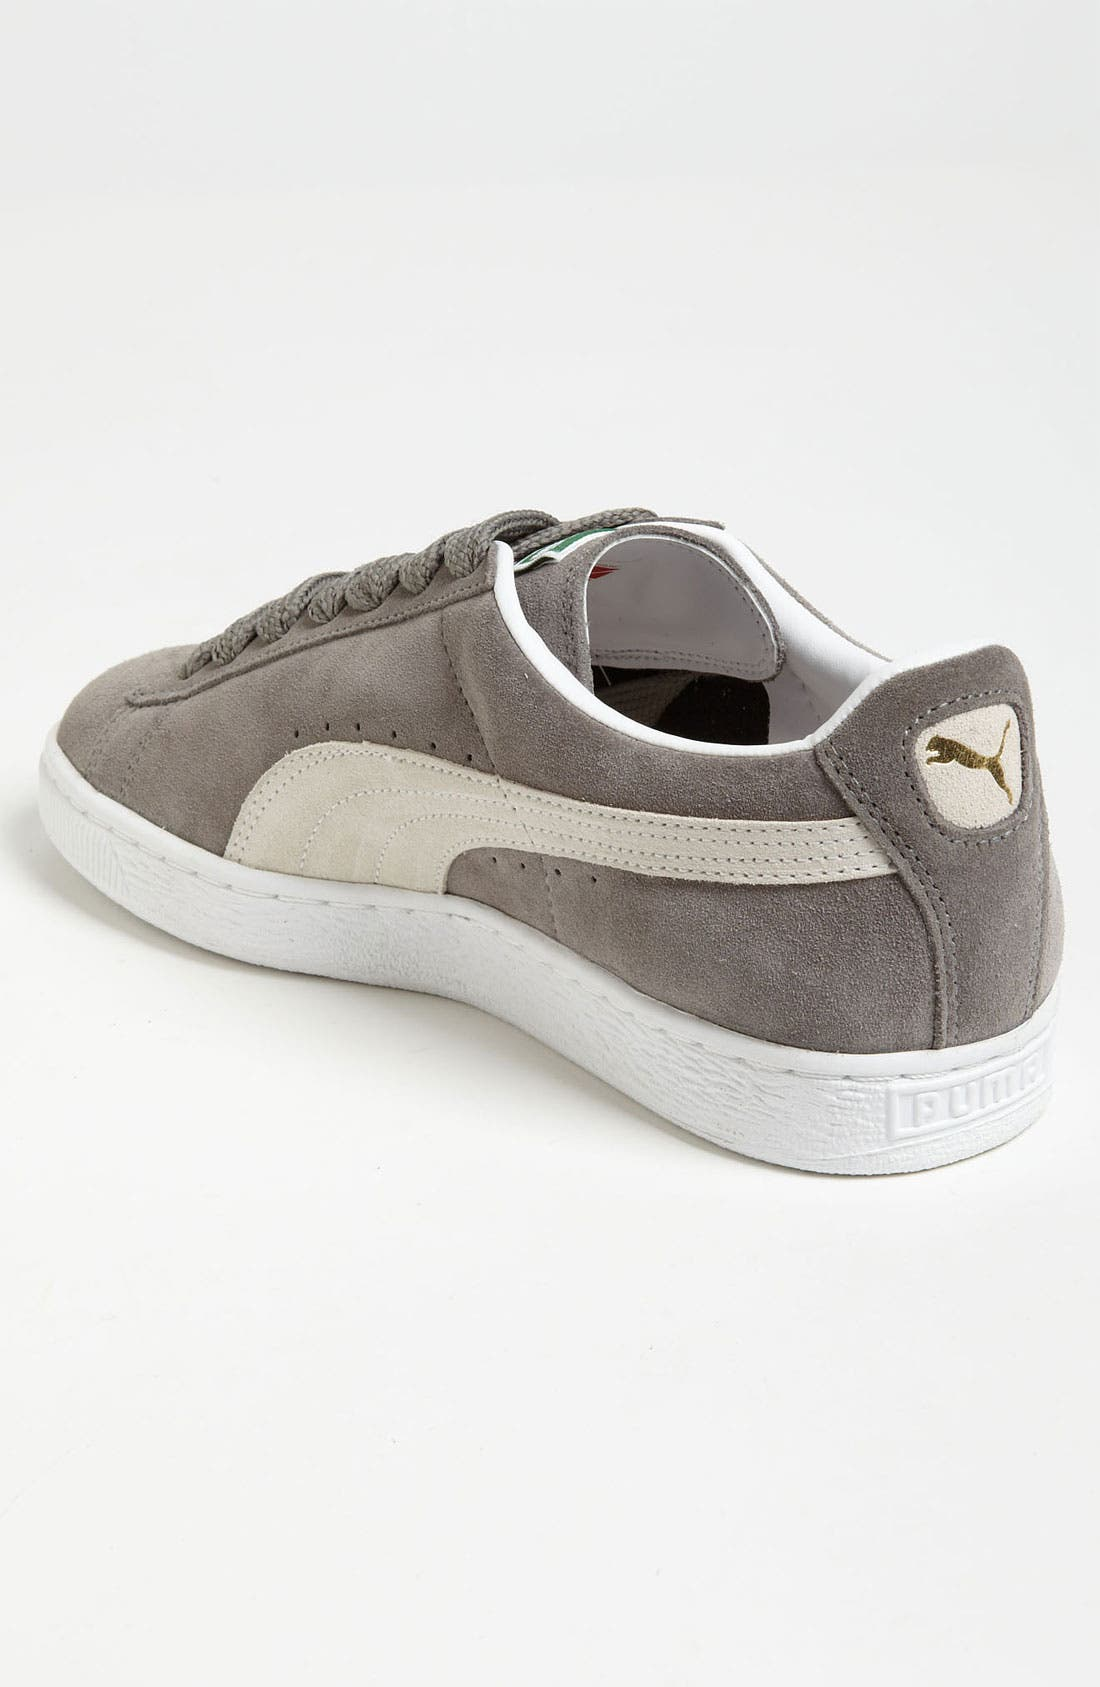 'Classic Eco' Sneaker,                             Alternate thumbnail 2, color,                             Steeple Gray/ White